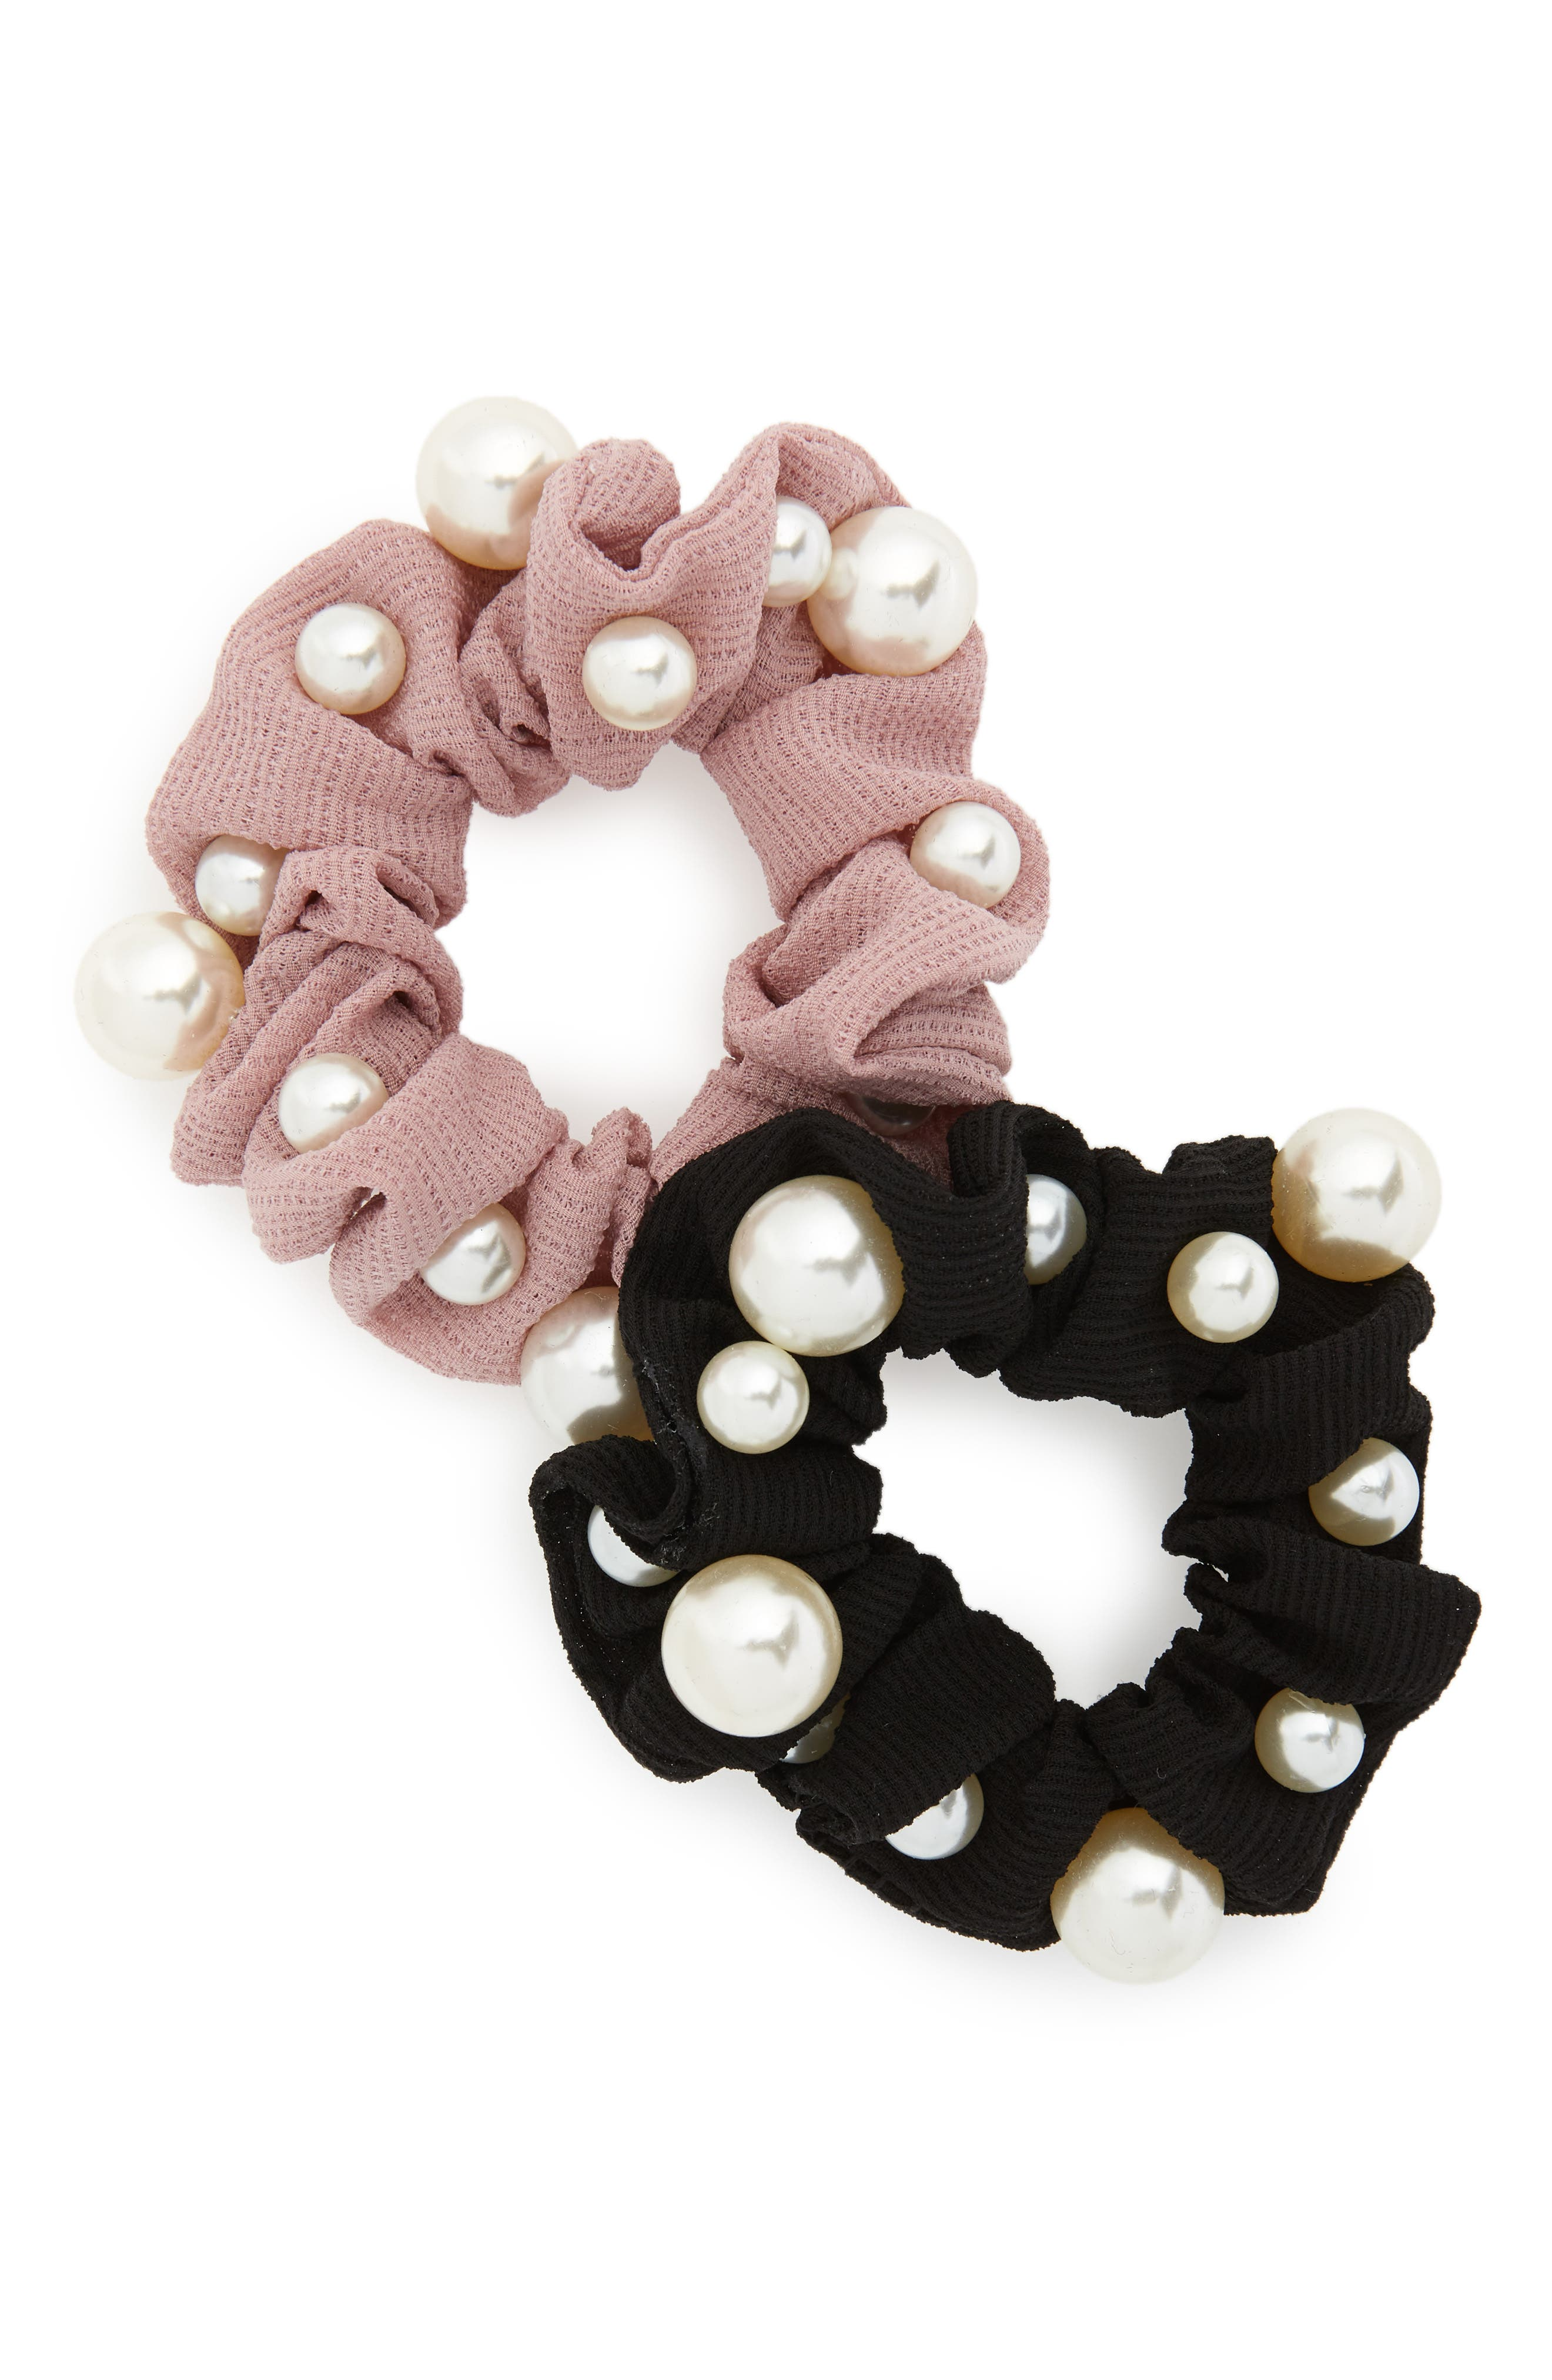 2-Pack Imitation Pearl Scrunchies,                         Main,                         color, Black/ Pink